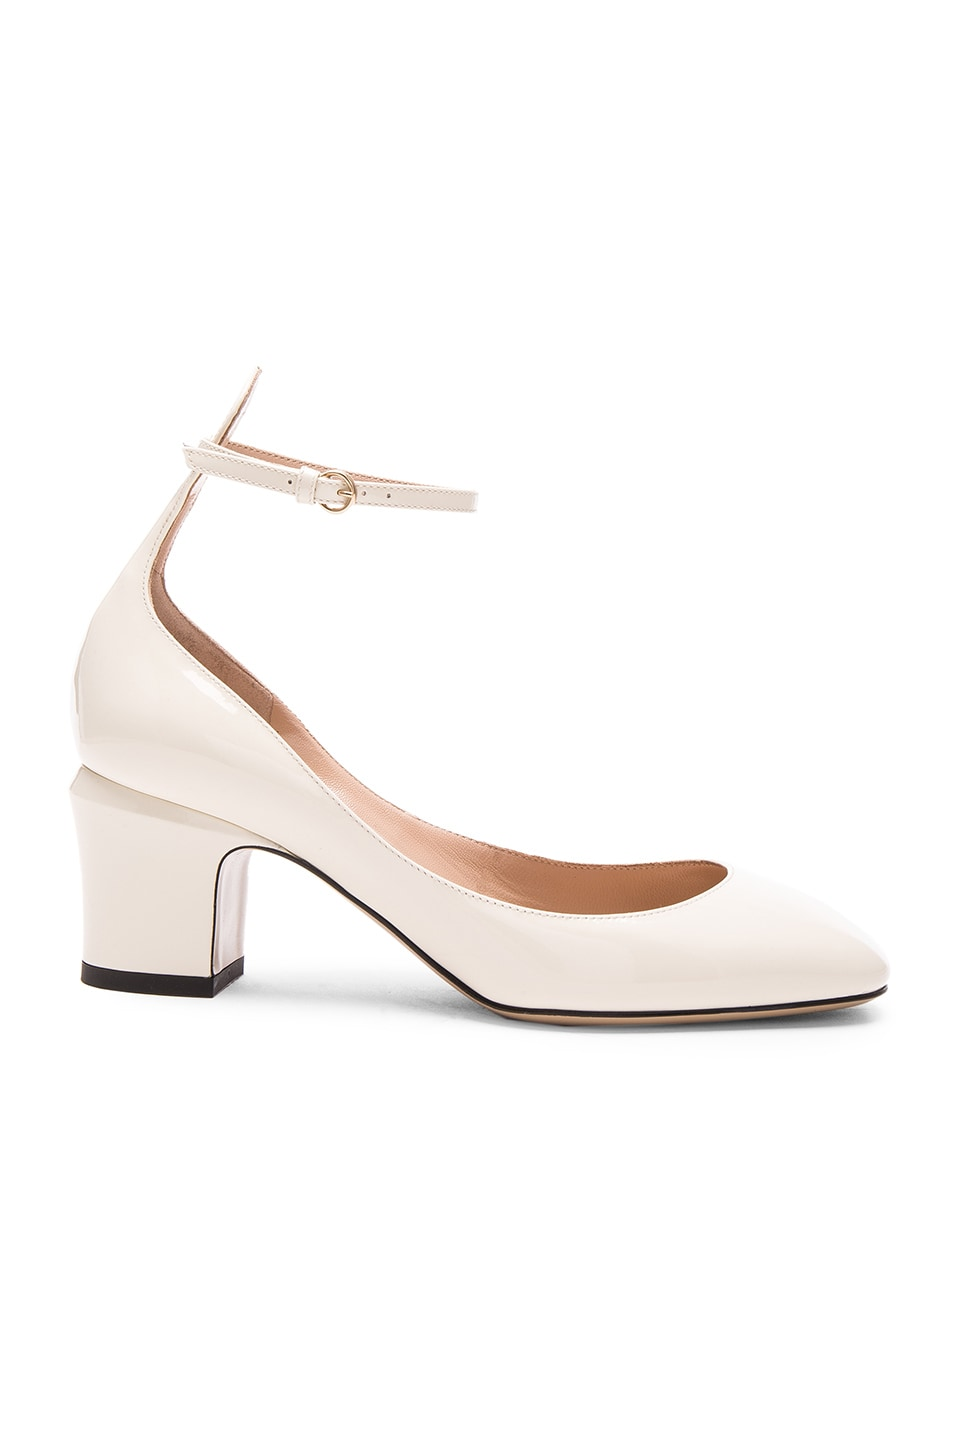 Image 1 of Valentino Patent Leather Tan-Go Pumps in Light Ivory